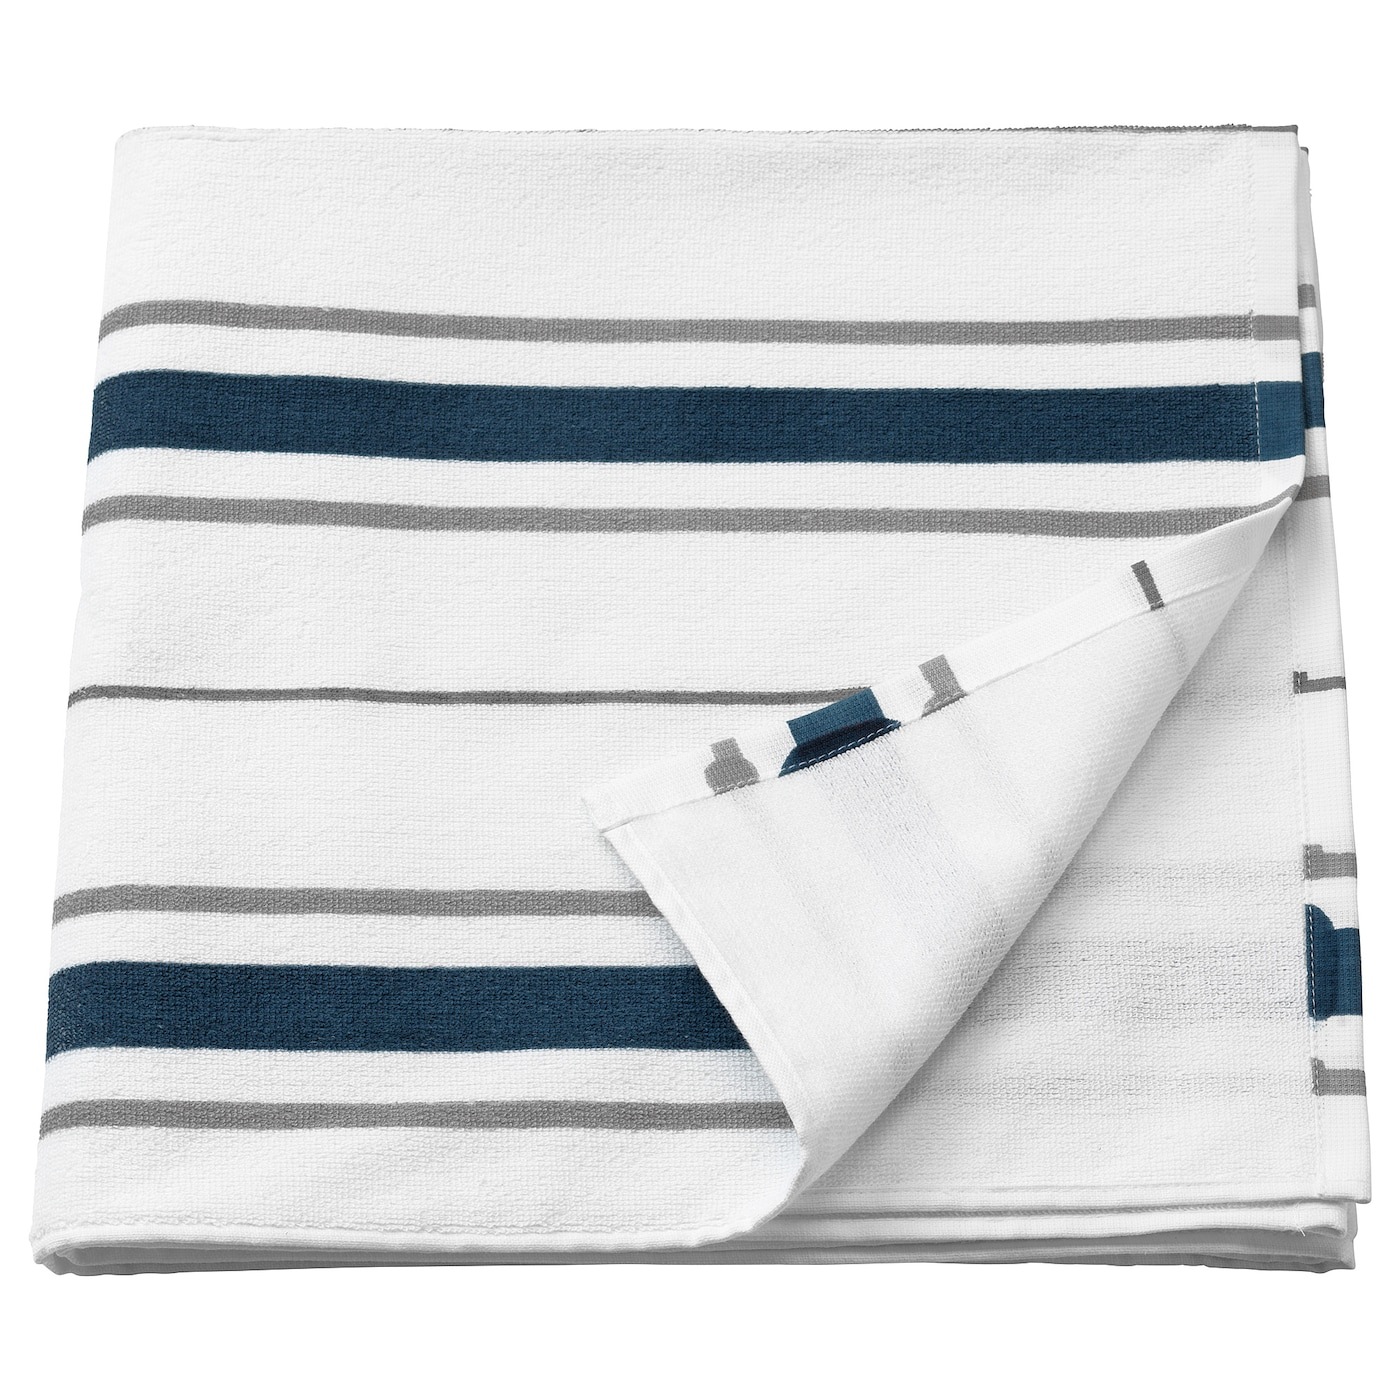 IKEA OTTSJÖN bath towel A terry towel that is soft and absorbent (weight 390 g/m²).